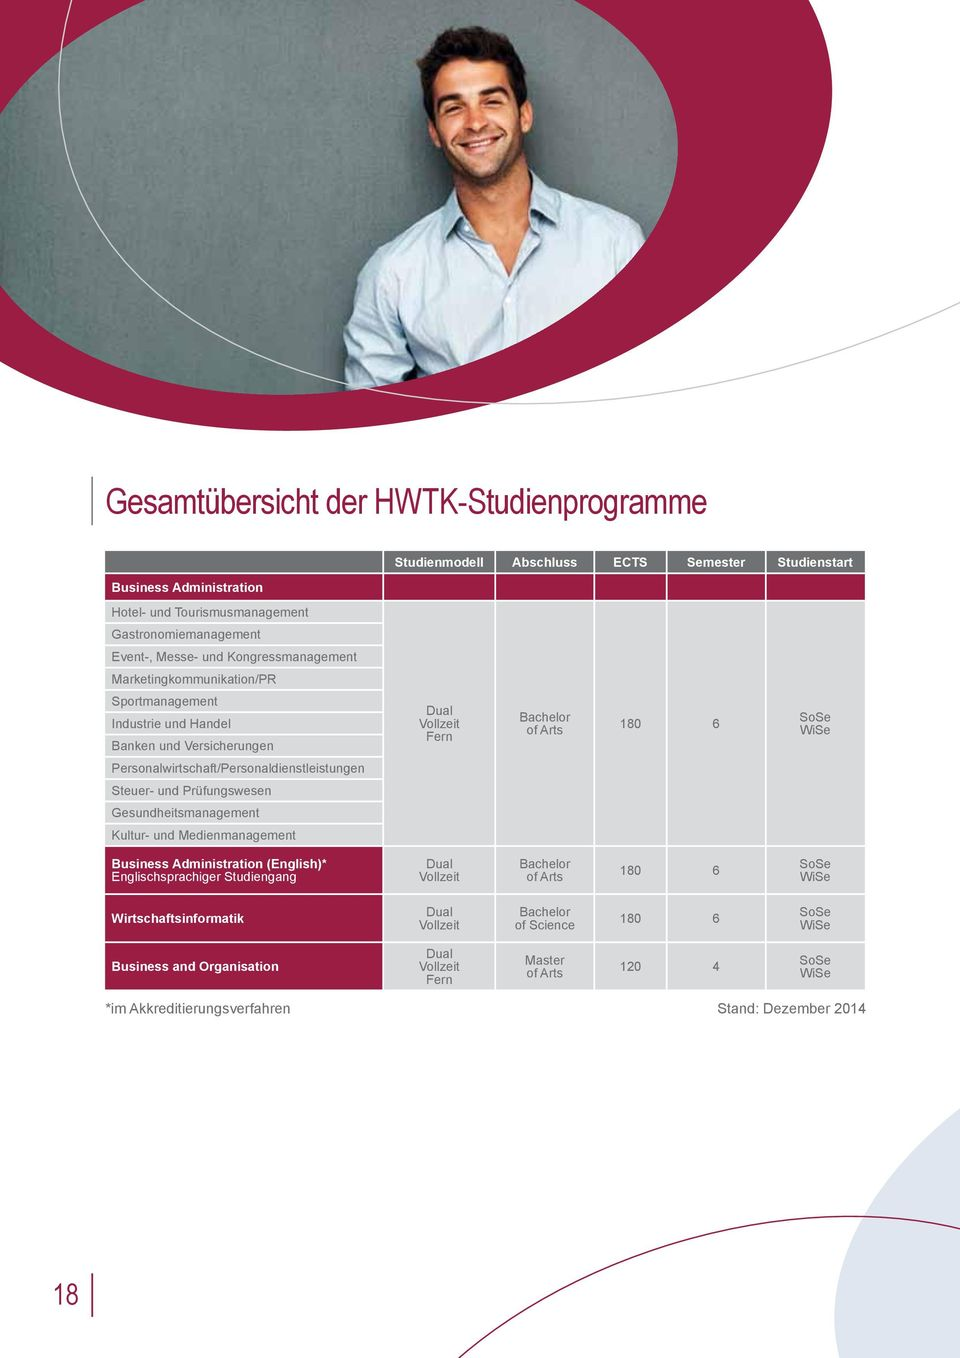 Personalwirtschaft/Personaldienstleistungen Steuer- und Prüfungswesen Gesundheitsmanagement Kultur- und Medienmanagement Business Administration (English)* Englischsprachiger Studiengang Dual